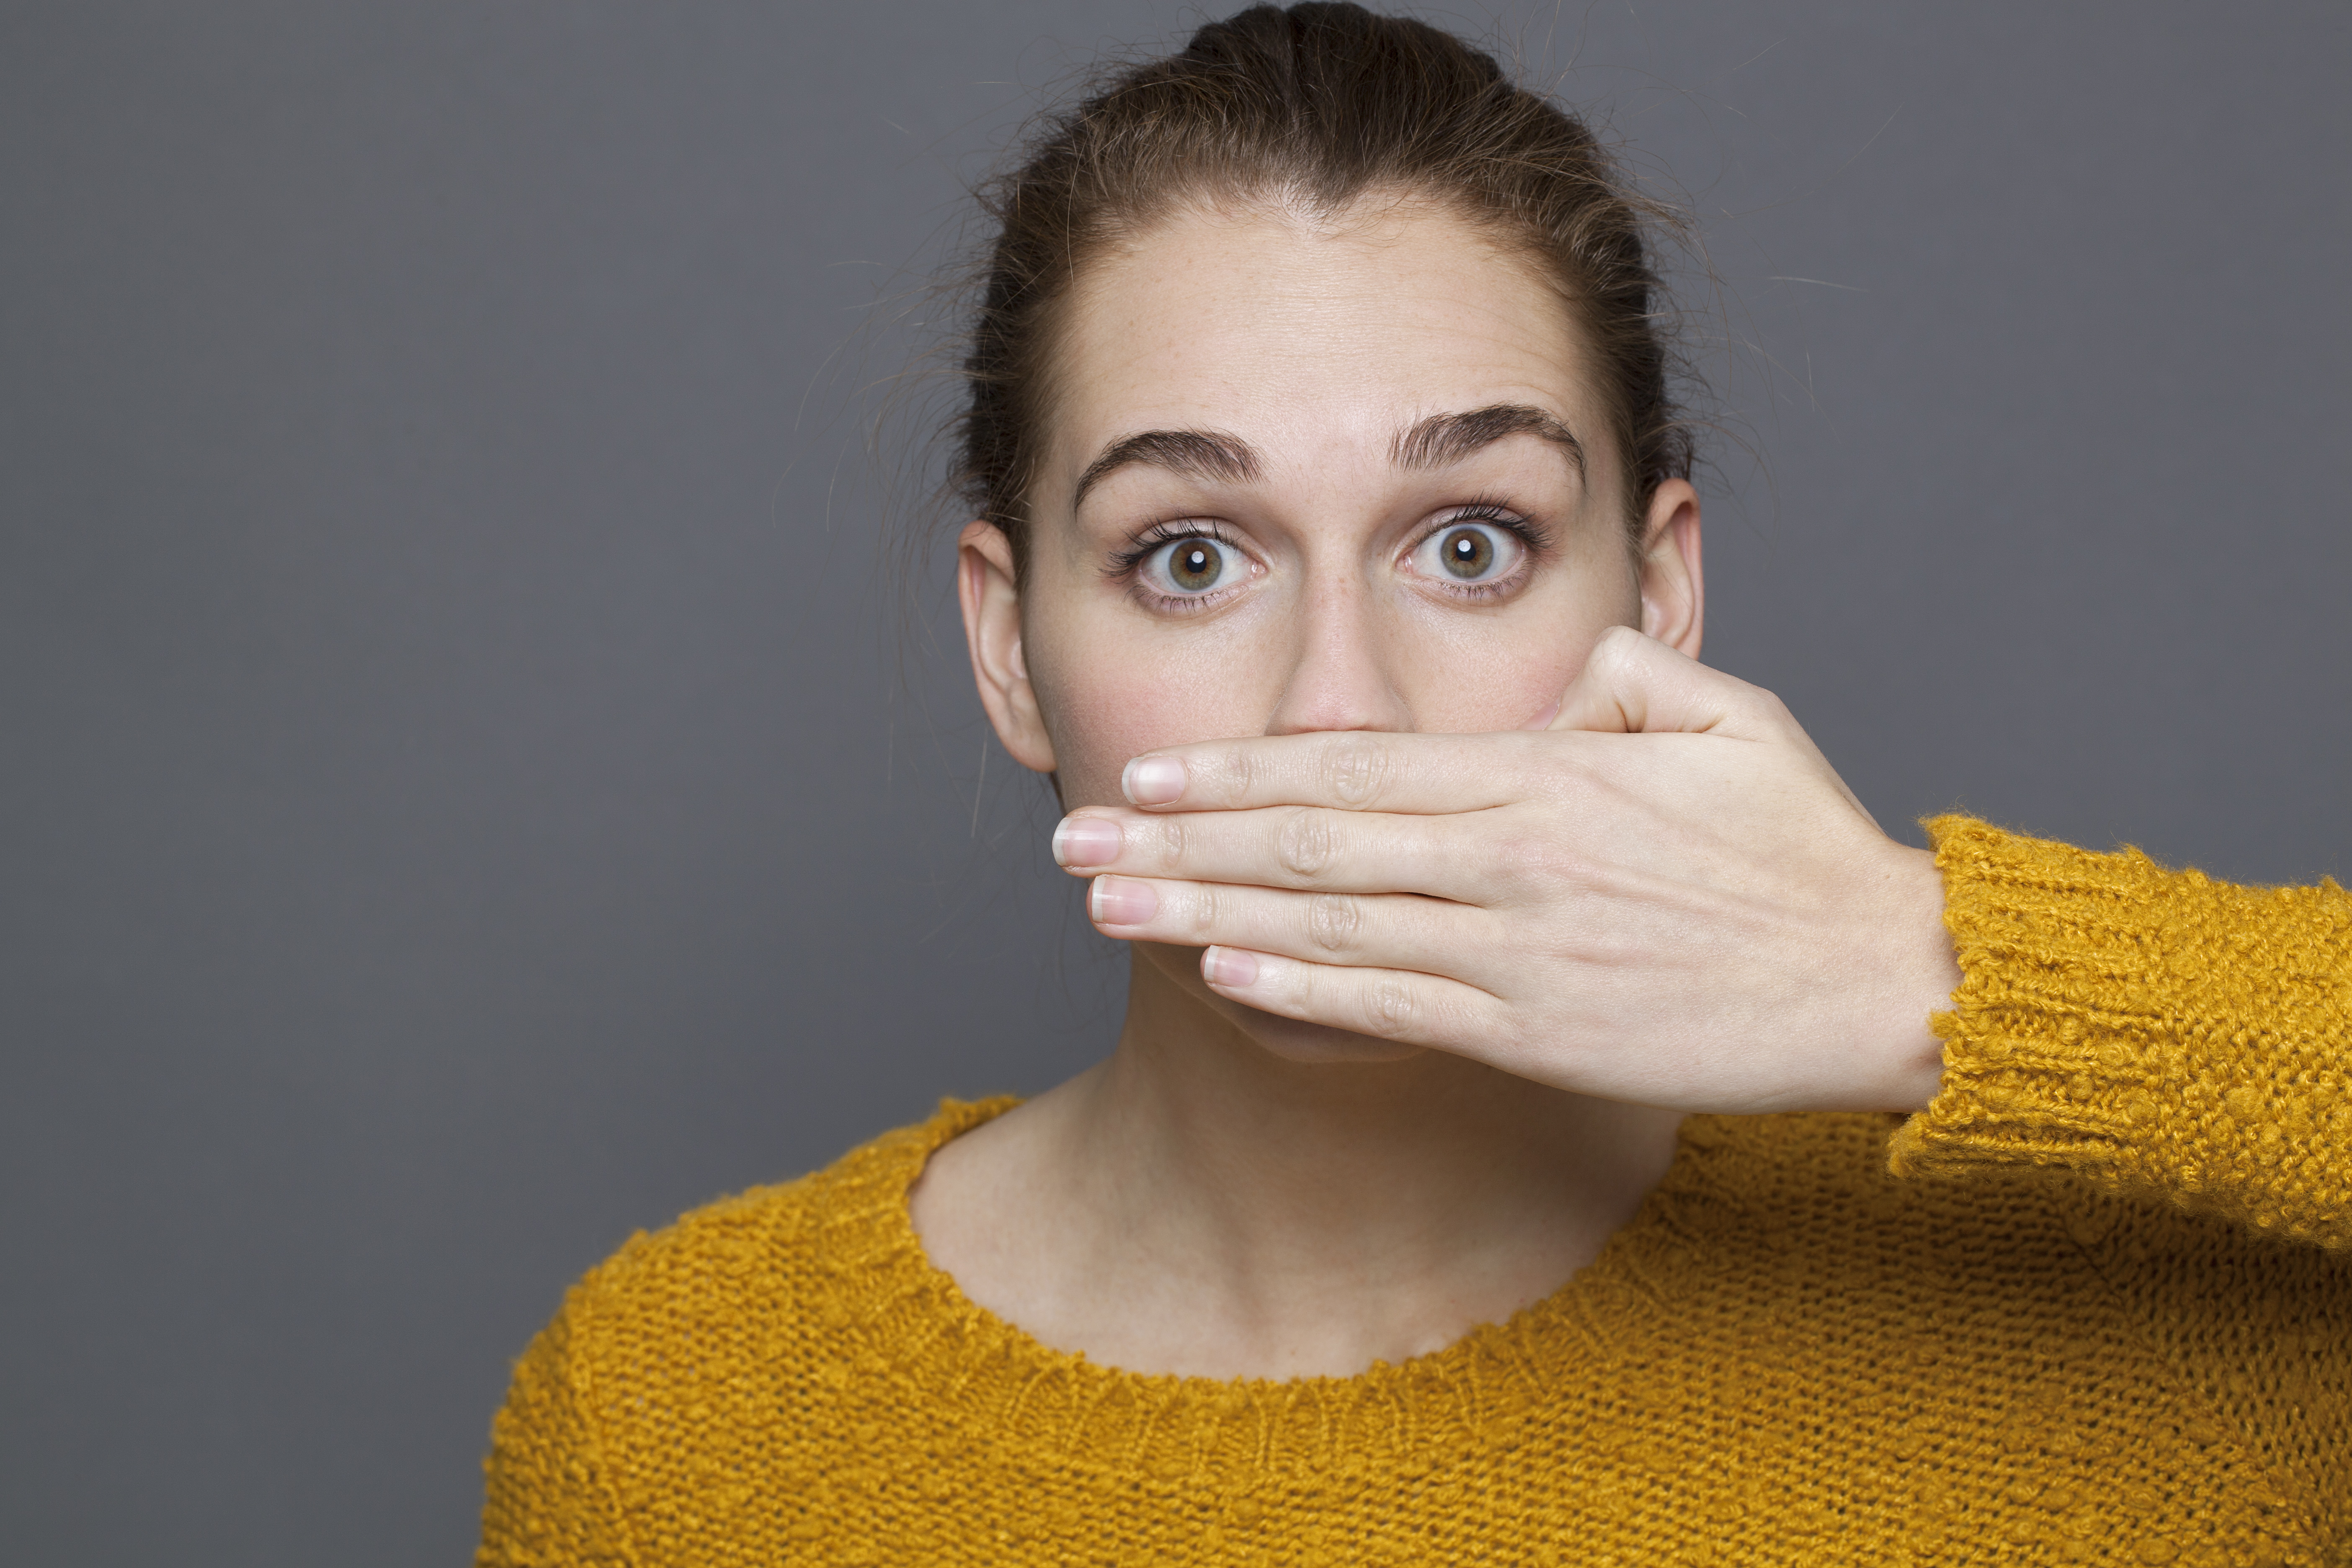 Oral Health 101: Why Bad Breath?